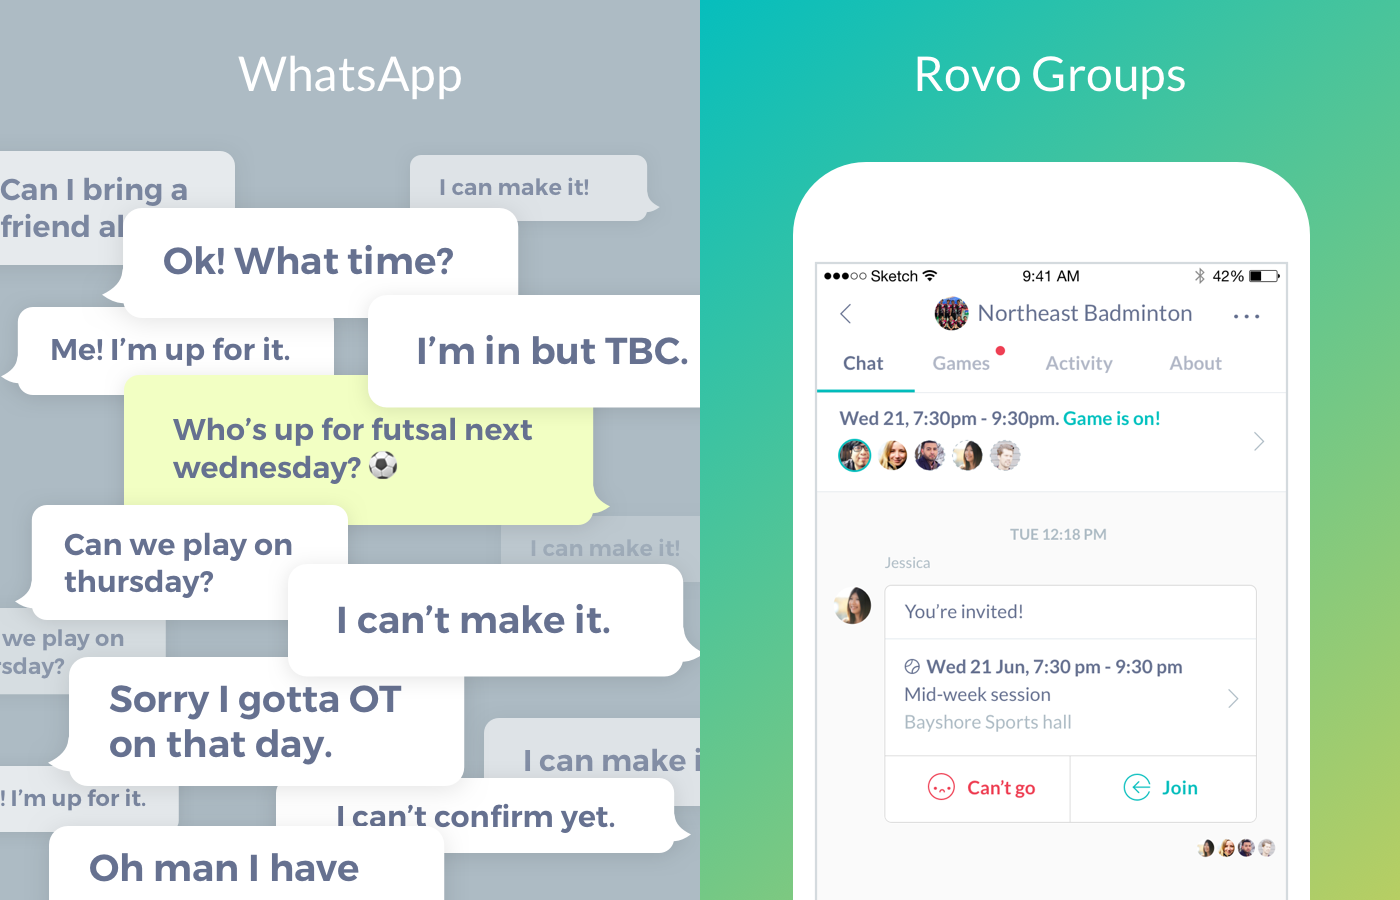 Stop using Whatsapp for Sports - Rovo Groups